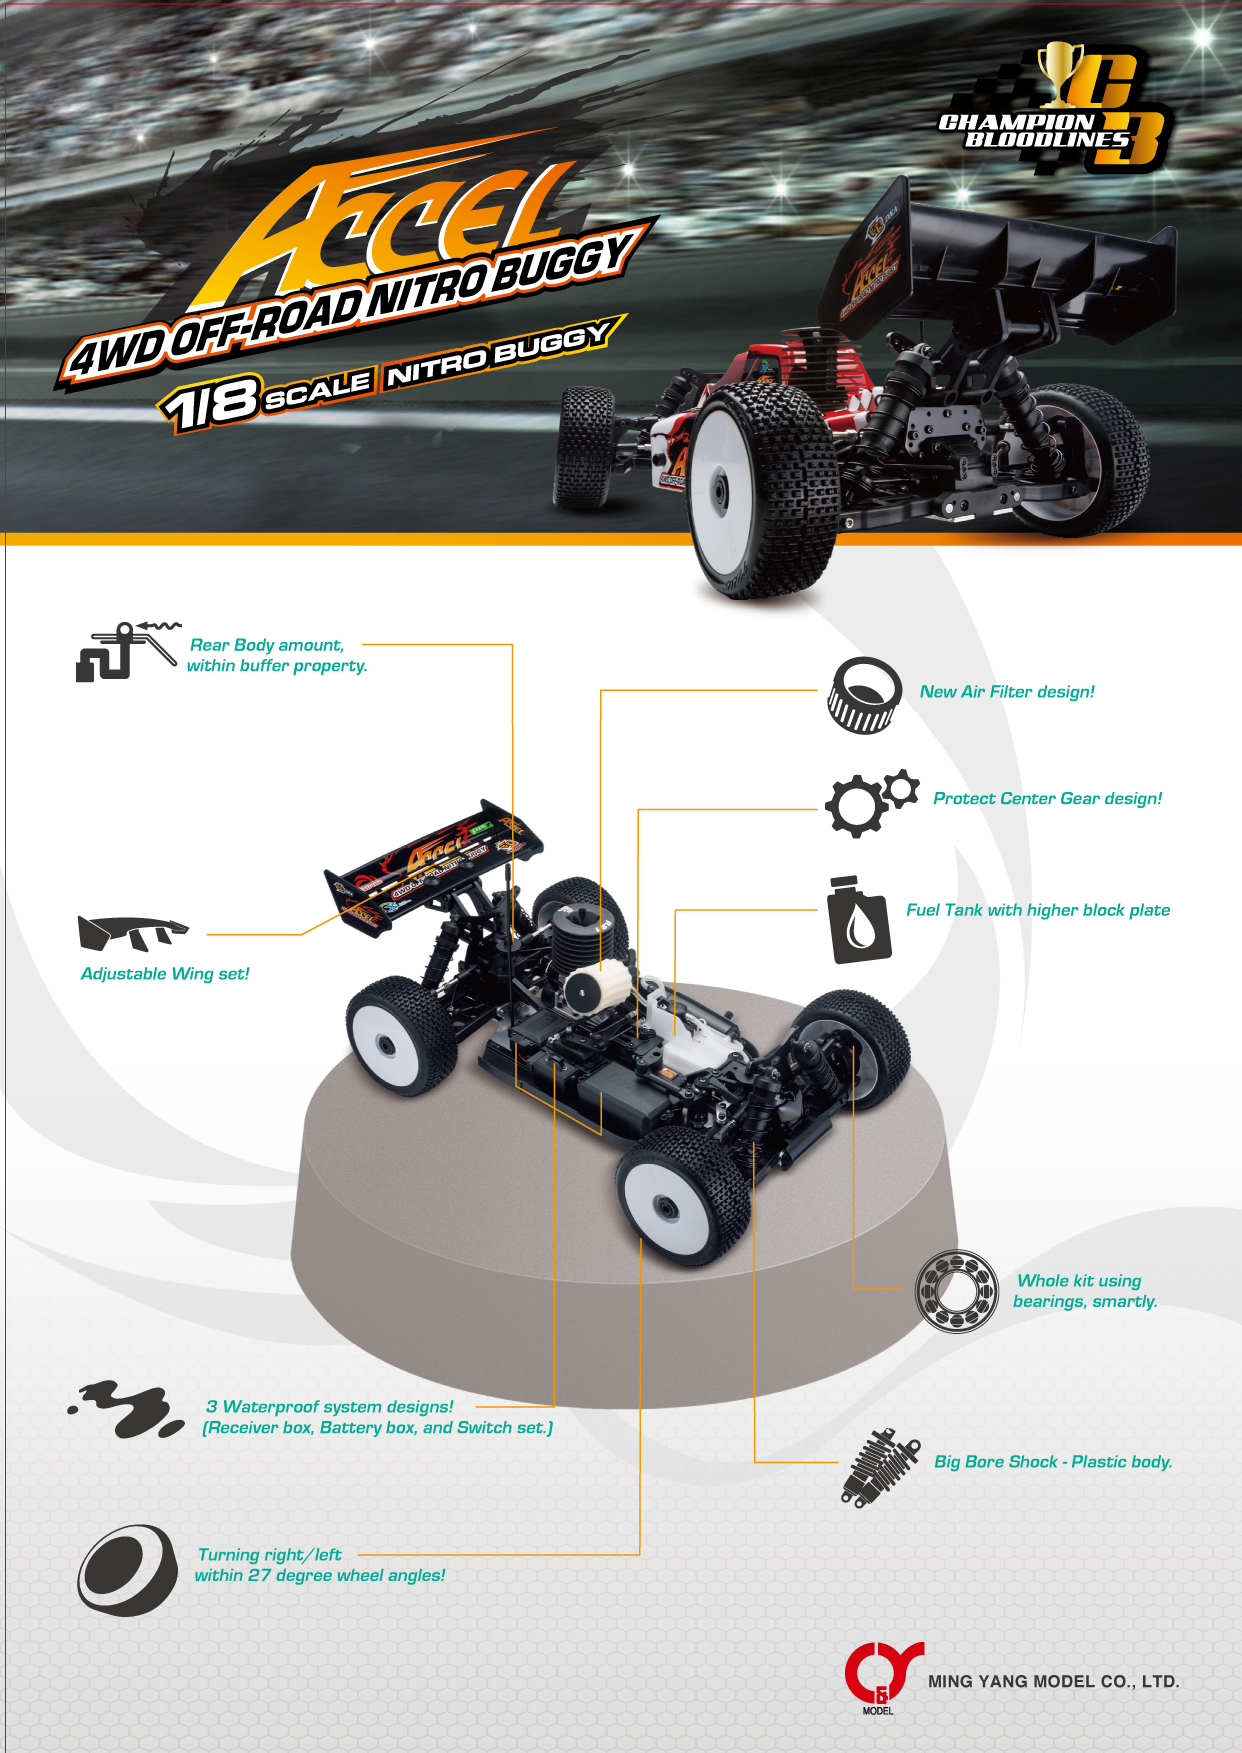 Taiwan ACCEL RC Car, Friction, Radio Control and Wind up Toys | MING